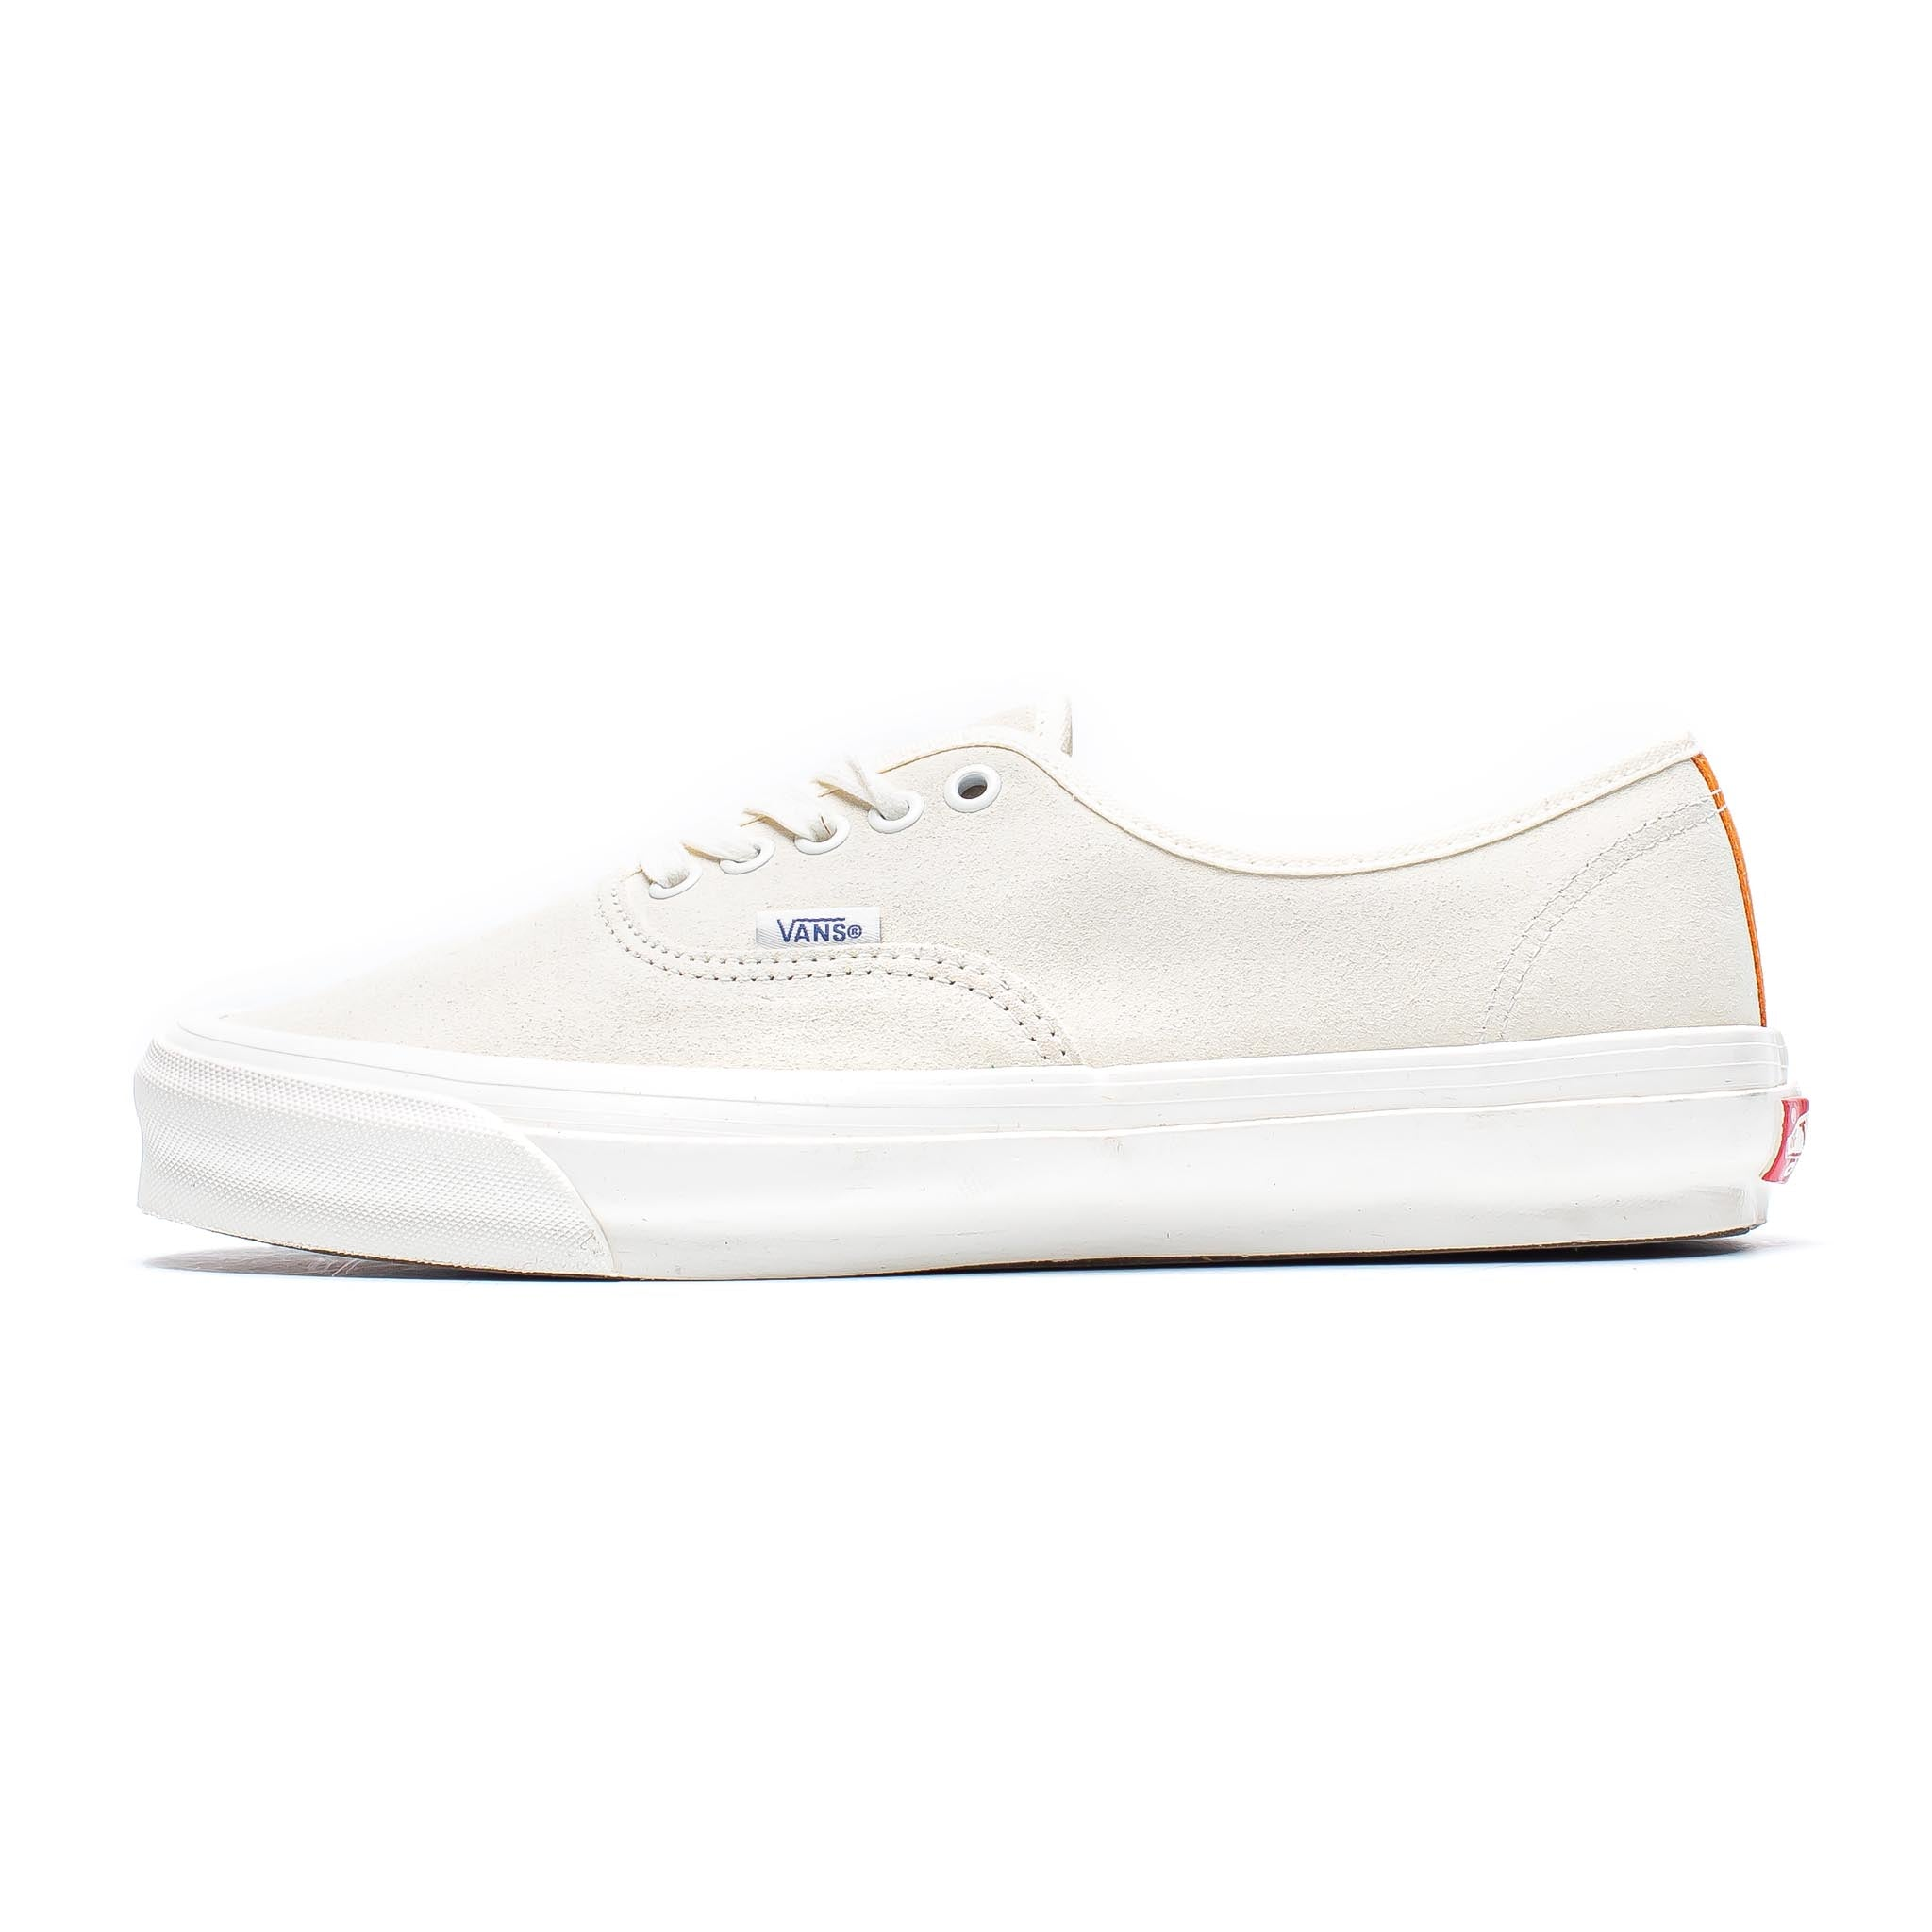 Vans Vault OG Authentic LX Antique White